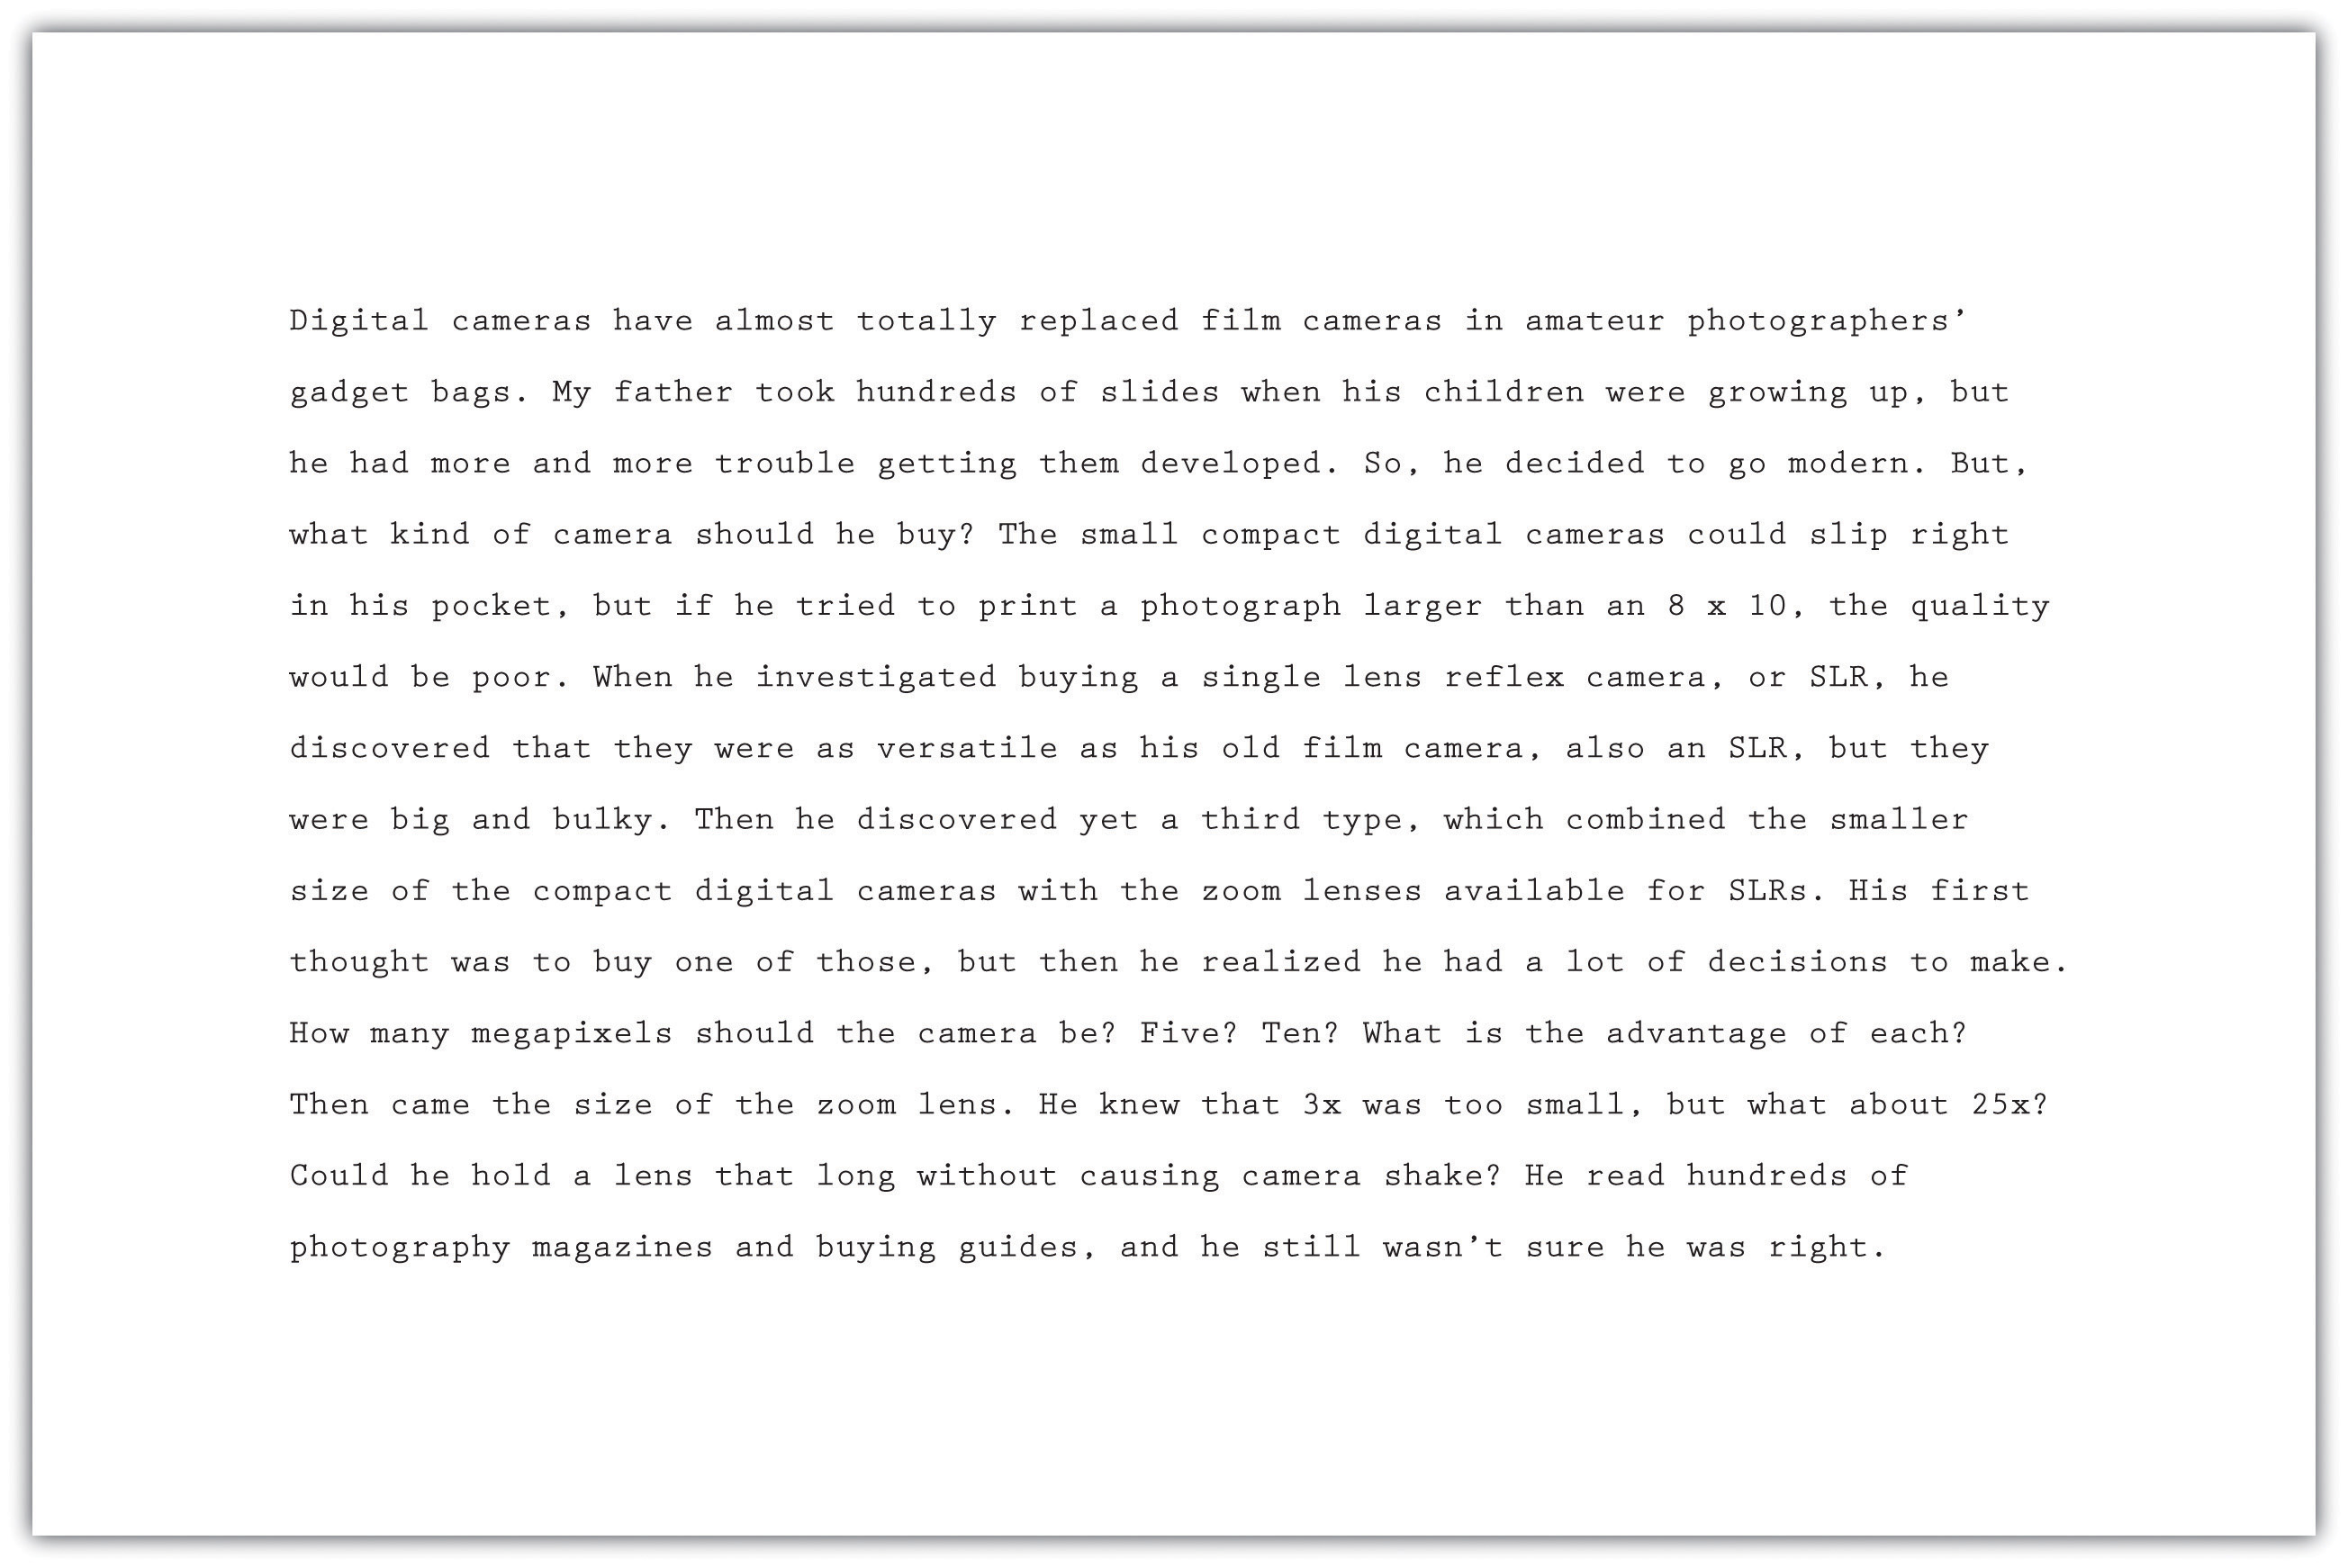 009 Essay Example Where Do You See Yourself In Sensational 10 Years U Full